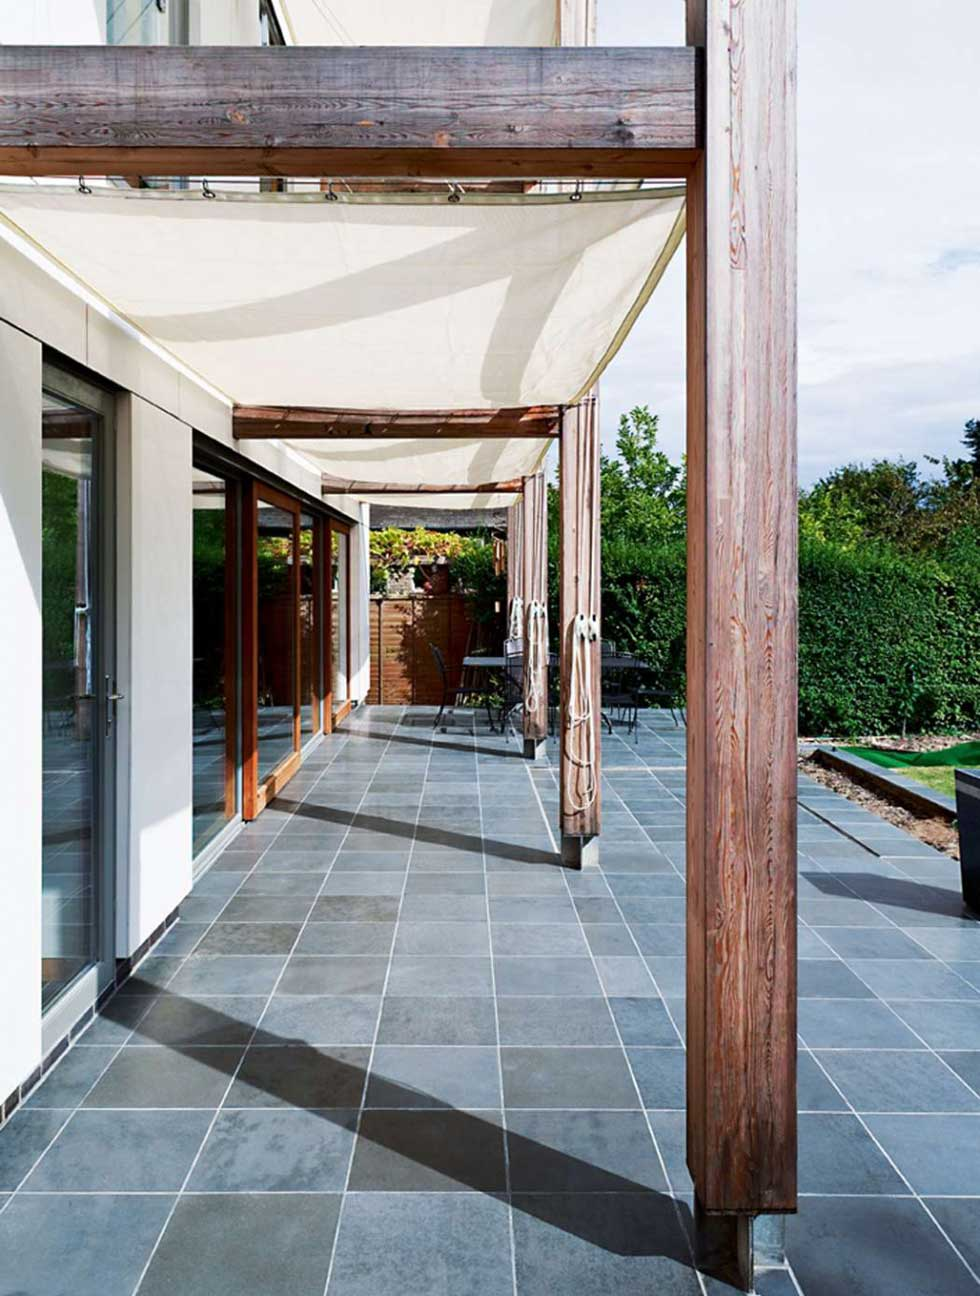 Ceramic slate-look tiles continue out onto the patio and absorb the sun's heat